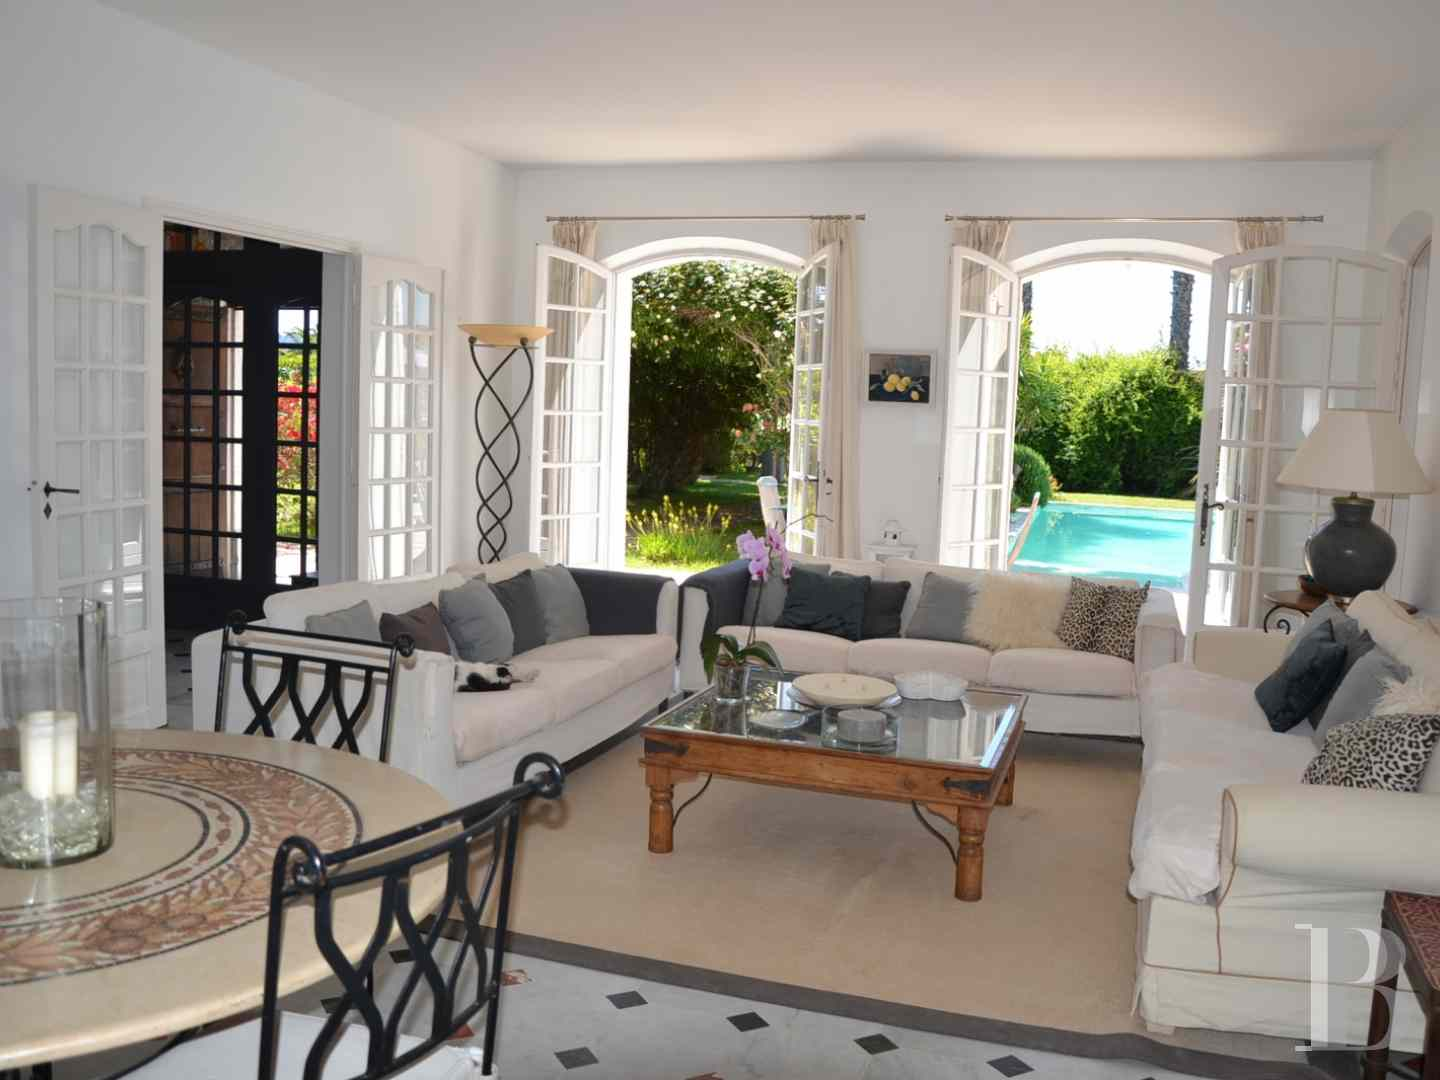 property for sale France provence cote dazur residences 20th - 13 zoom